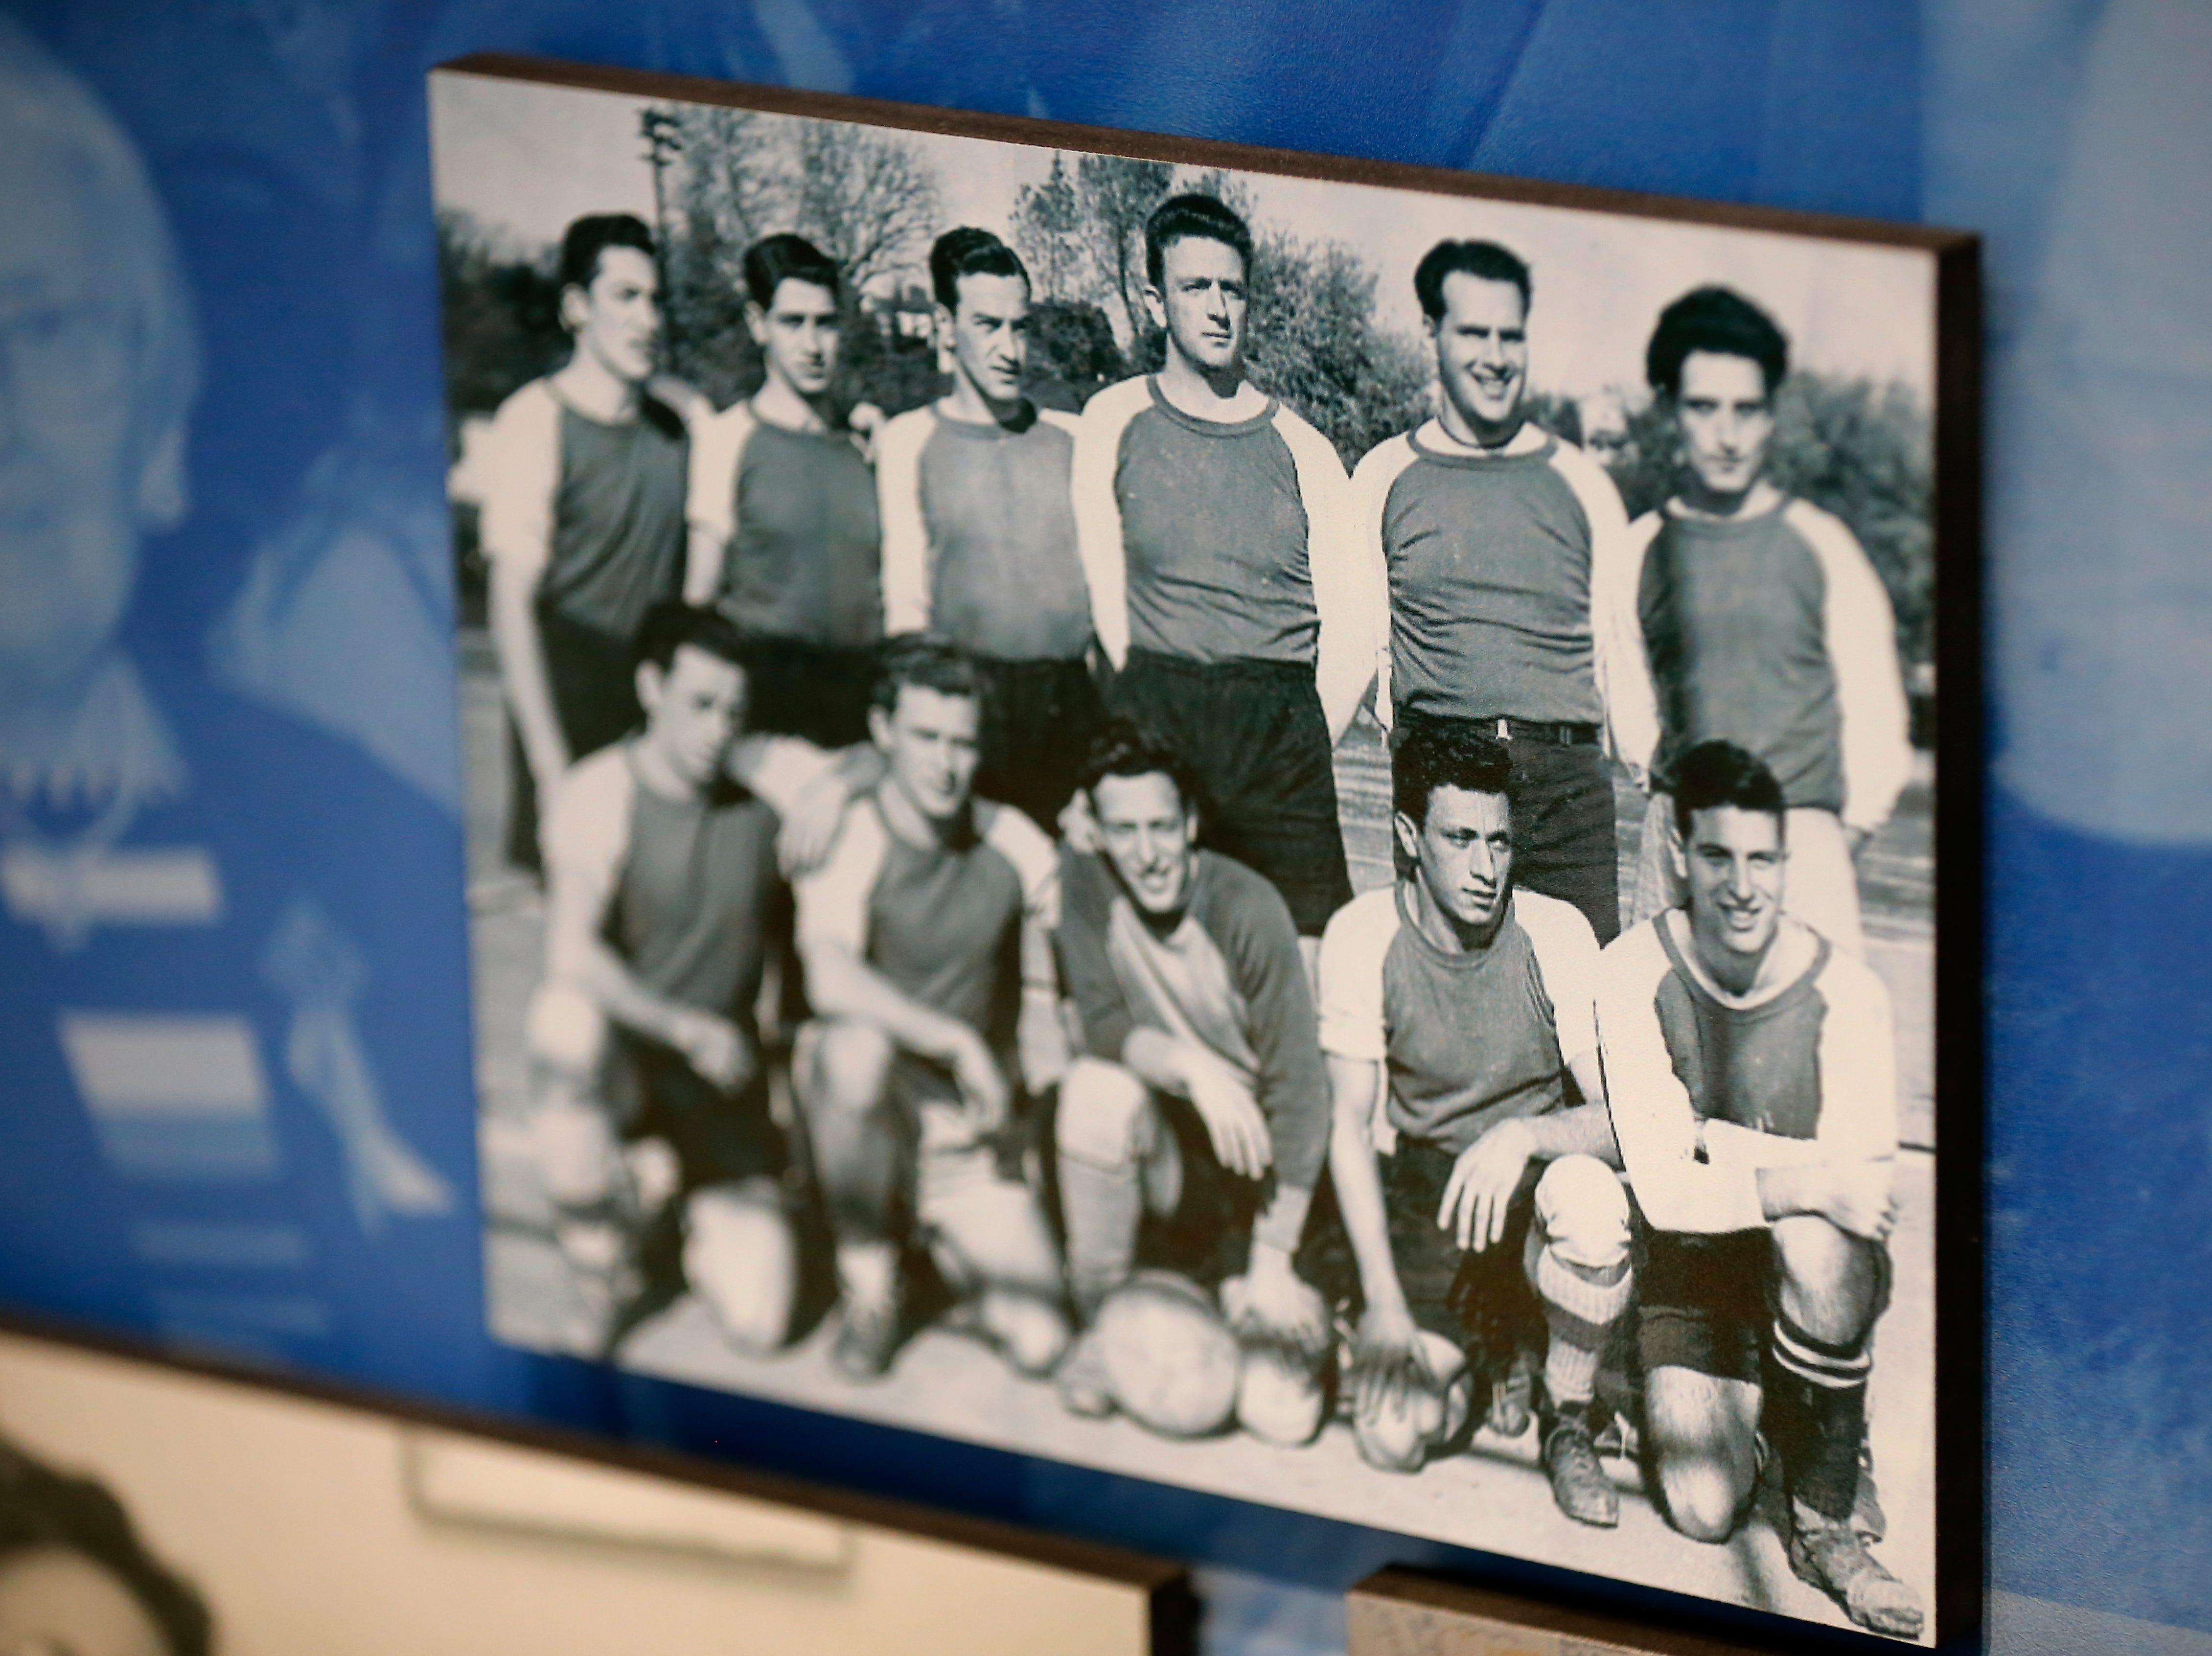 A photo of Al Miller posing with a soccer team of fellow survivors from the Cincinnati area is displayed in the new Holocaust and Humanity Center at the Cincinnati Museum Center in the Queensgate neighborhood of Cincinnati on Tuesday, Jan. 22, 2019. The new exhibit covering the events before, during and after the Holocaust will be open to the public Jan. 27.